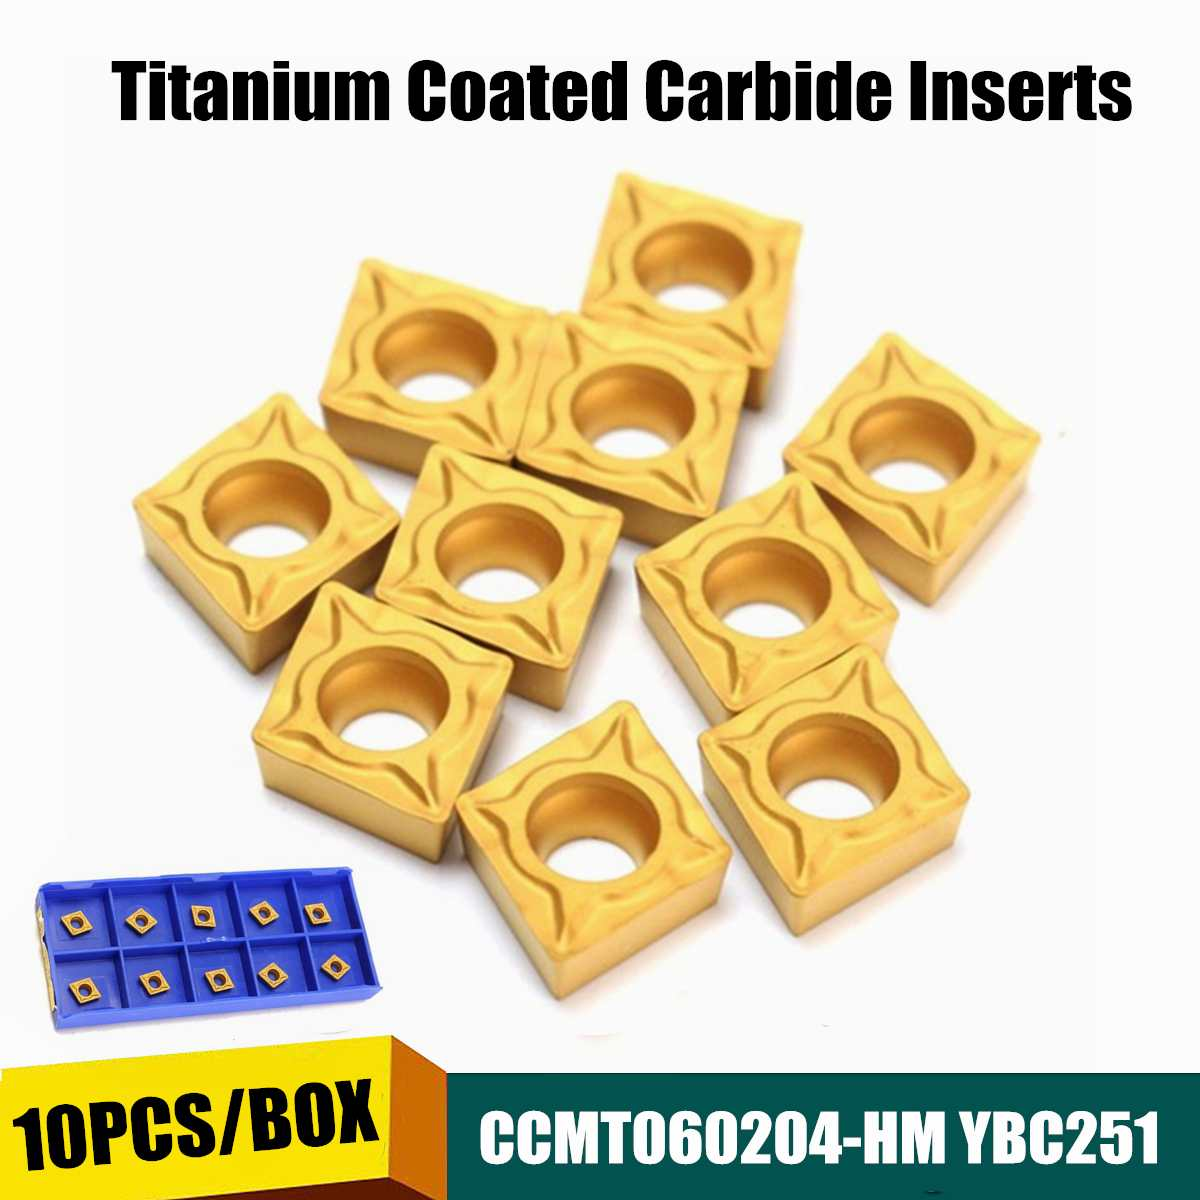 10Pcs Titaniums Coated Carbide Inserts CCMT060204-HM YBC251 Inner Round Milling Tool CNC Blade Lathe Tools CCMT 060204 Milling